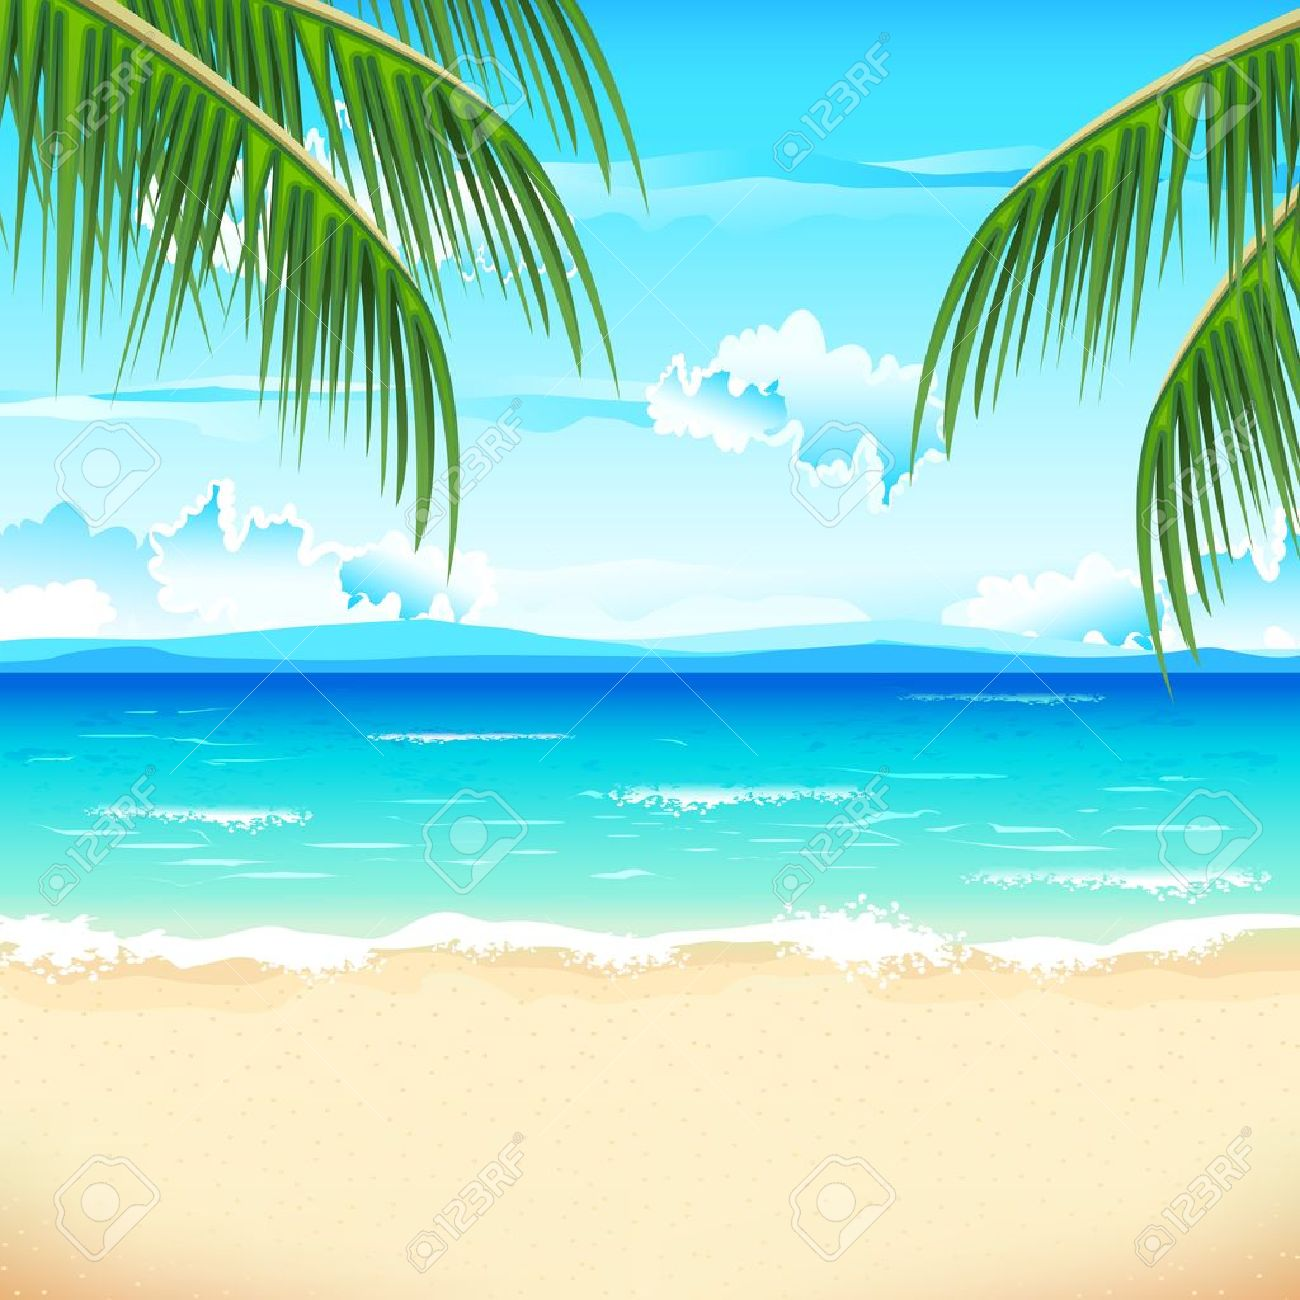 tranquil scene images u0026 stock pictures royalty free tranquil